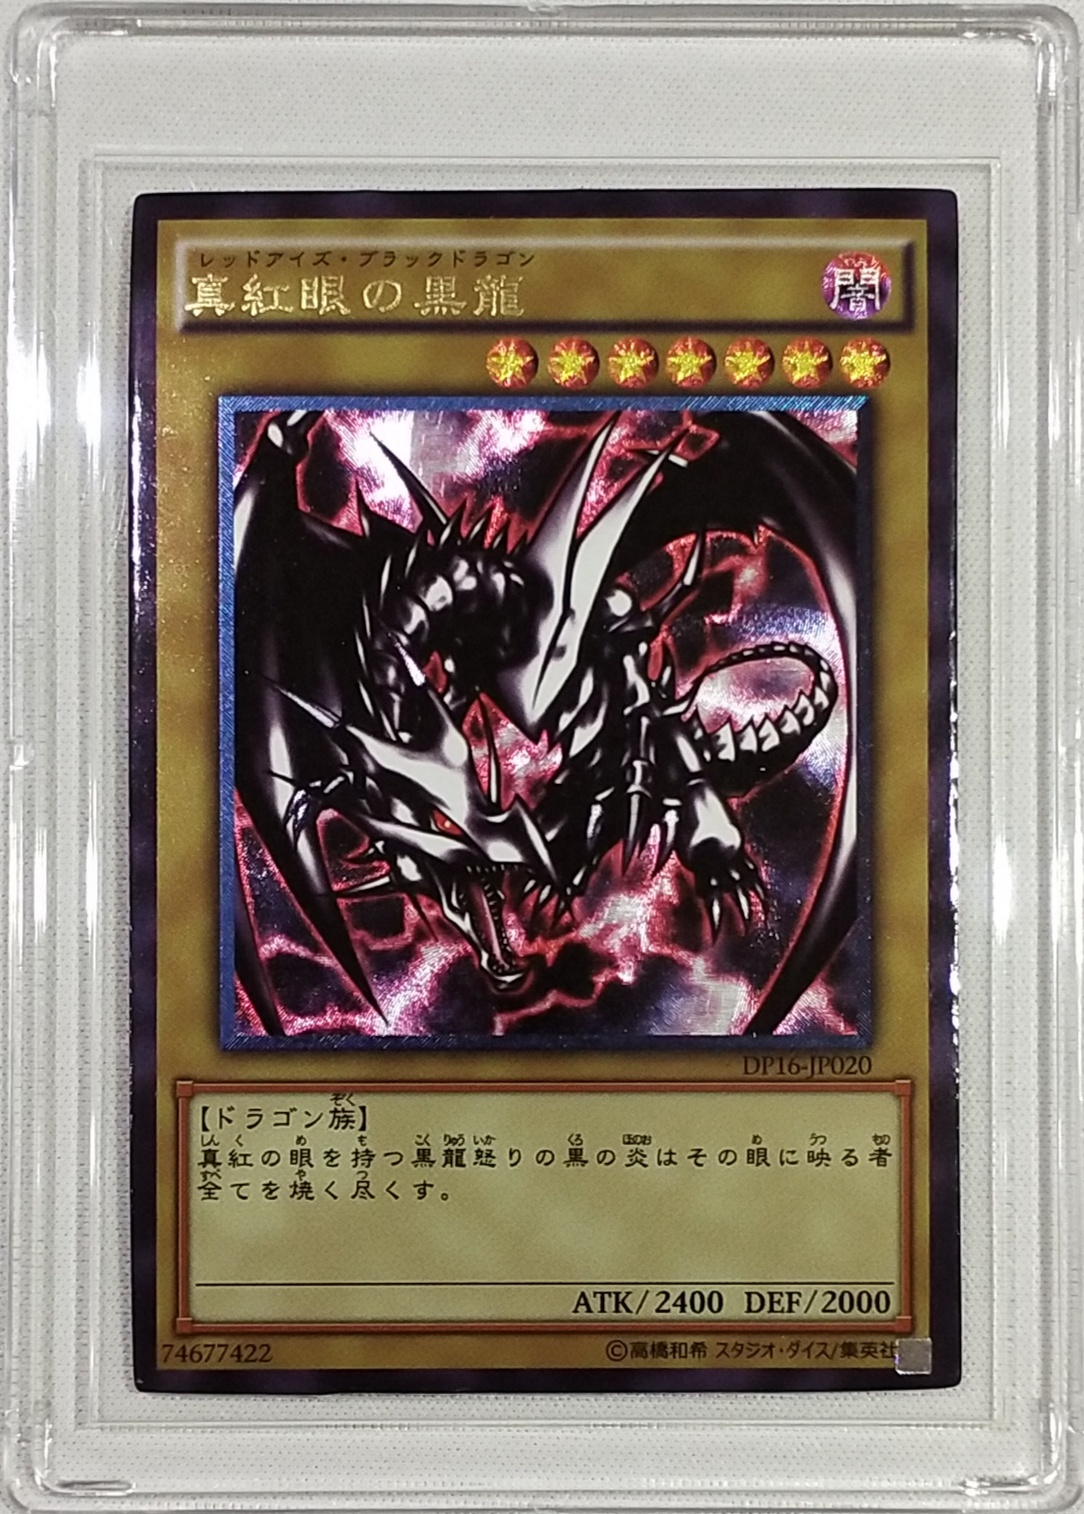 Yu Gi Oh Red-Eyes B. Dragon DIY Toys Hobbies Hobby Collectibles Game Collection Anime Cards